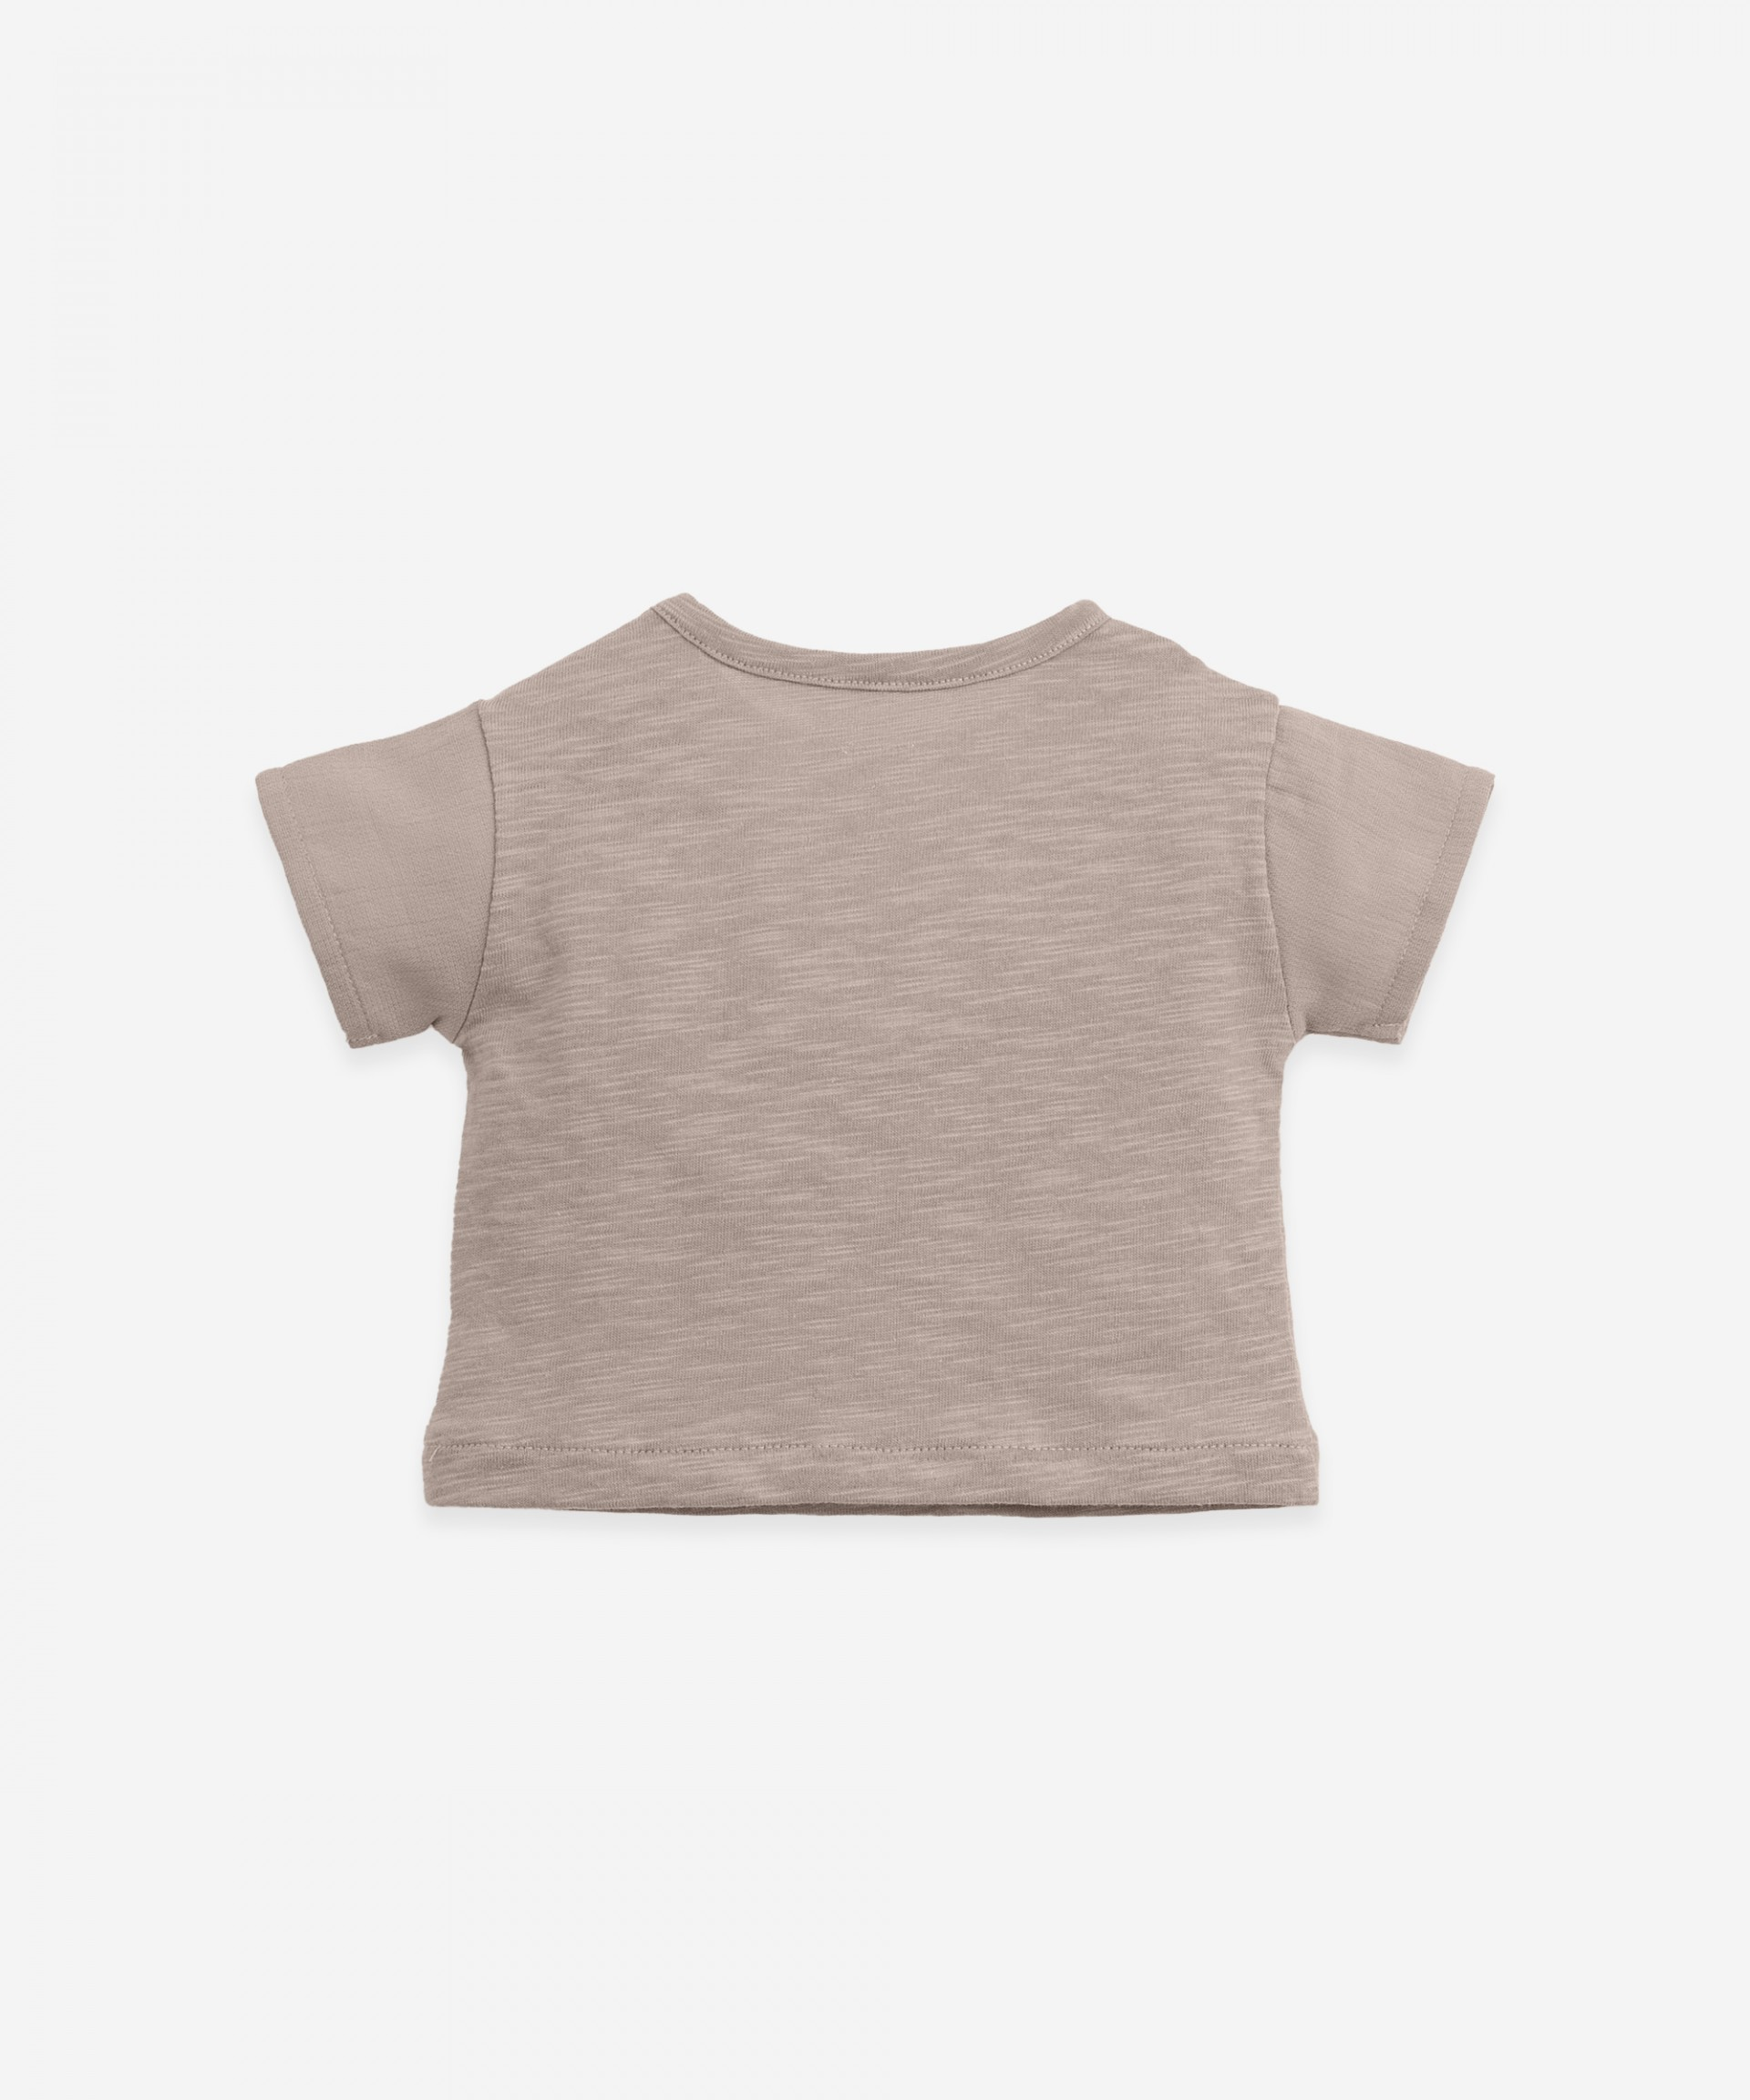 T-shirt with a front pocket | Botany